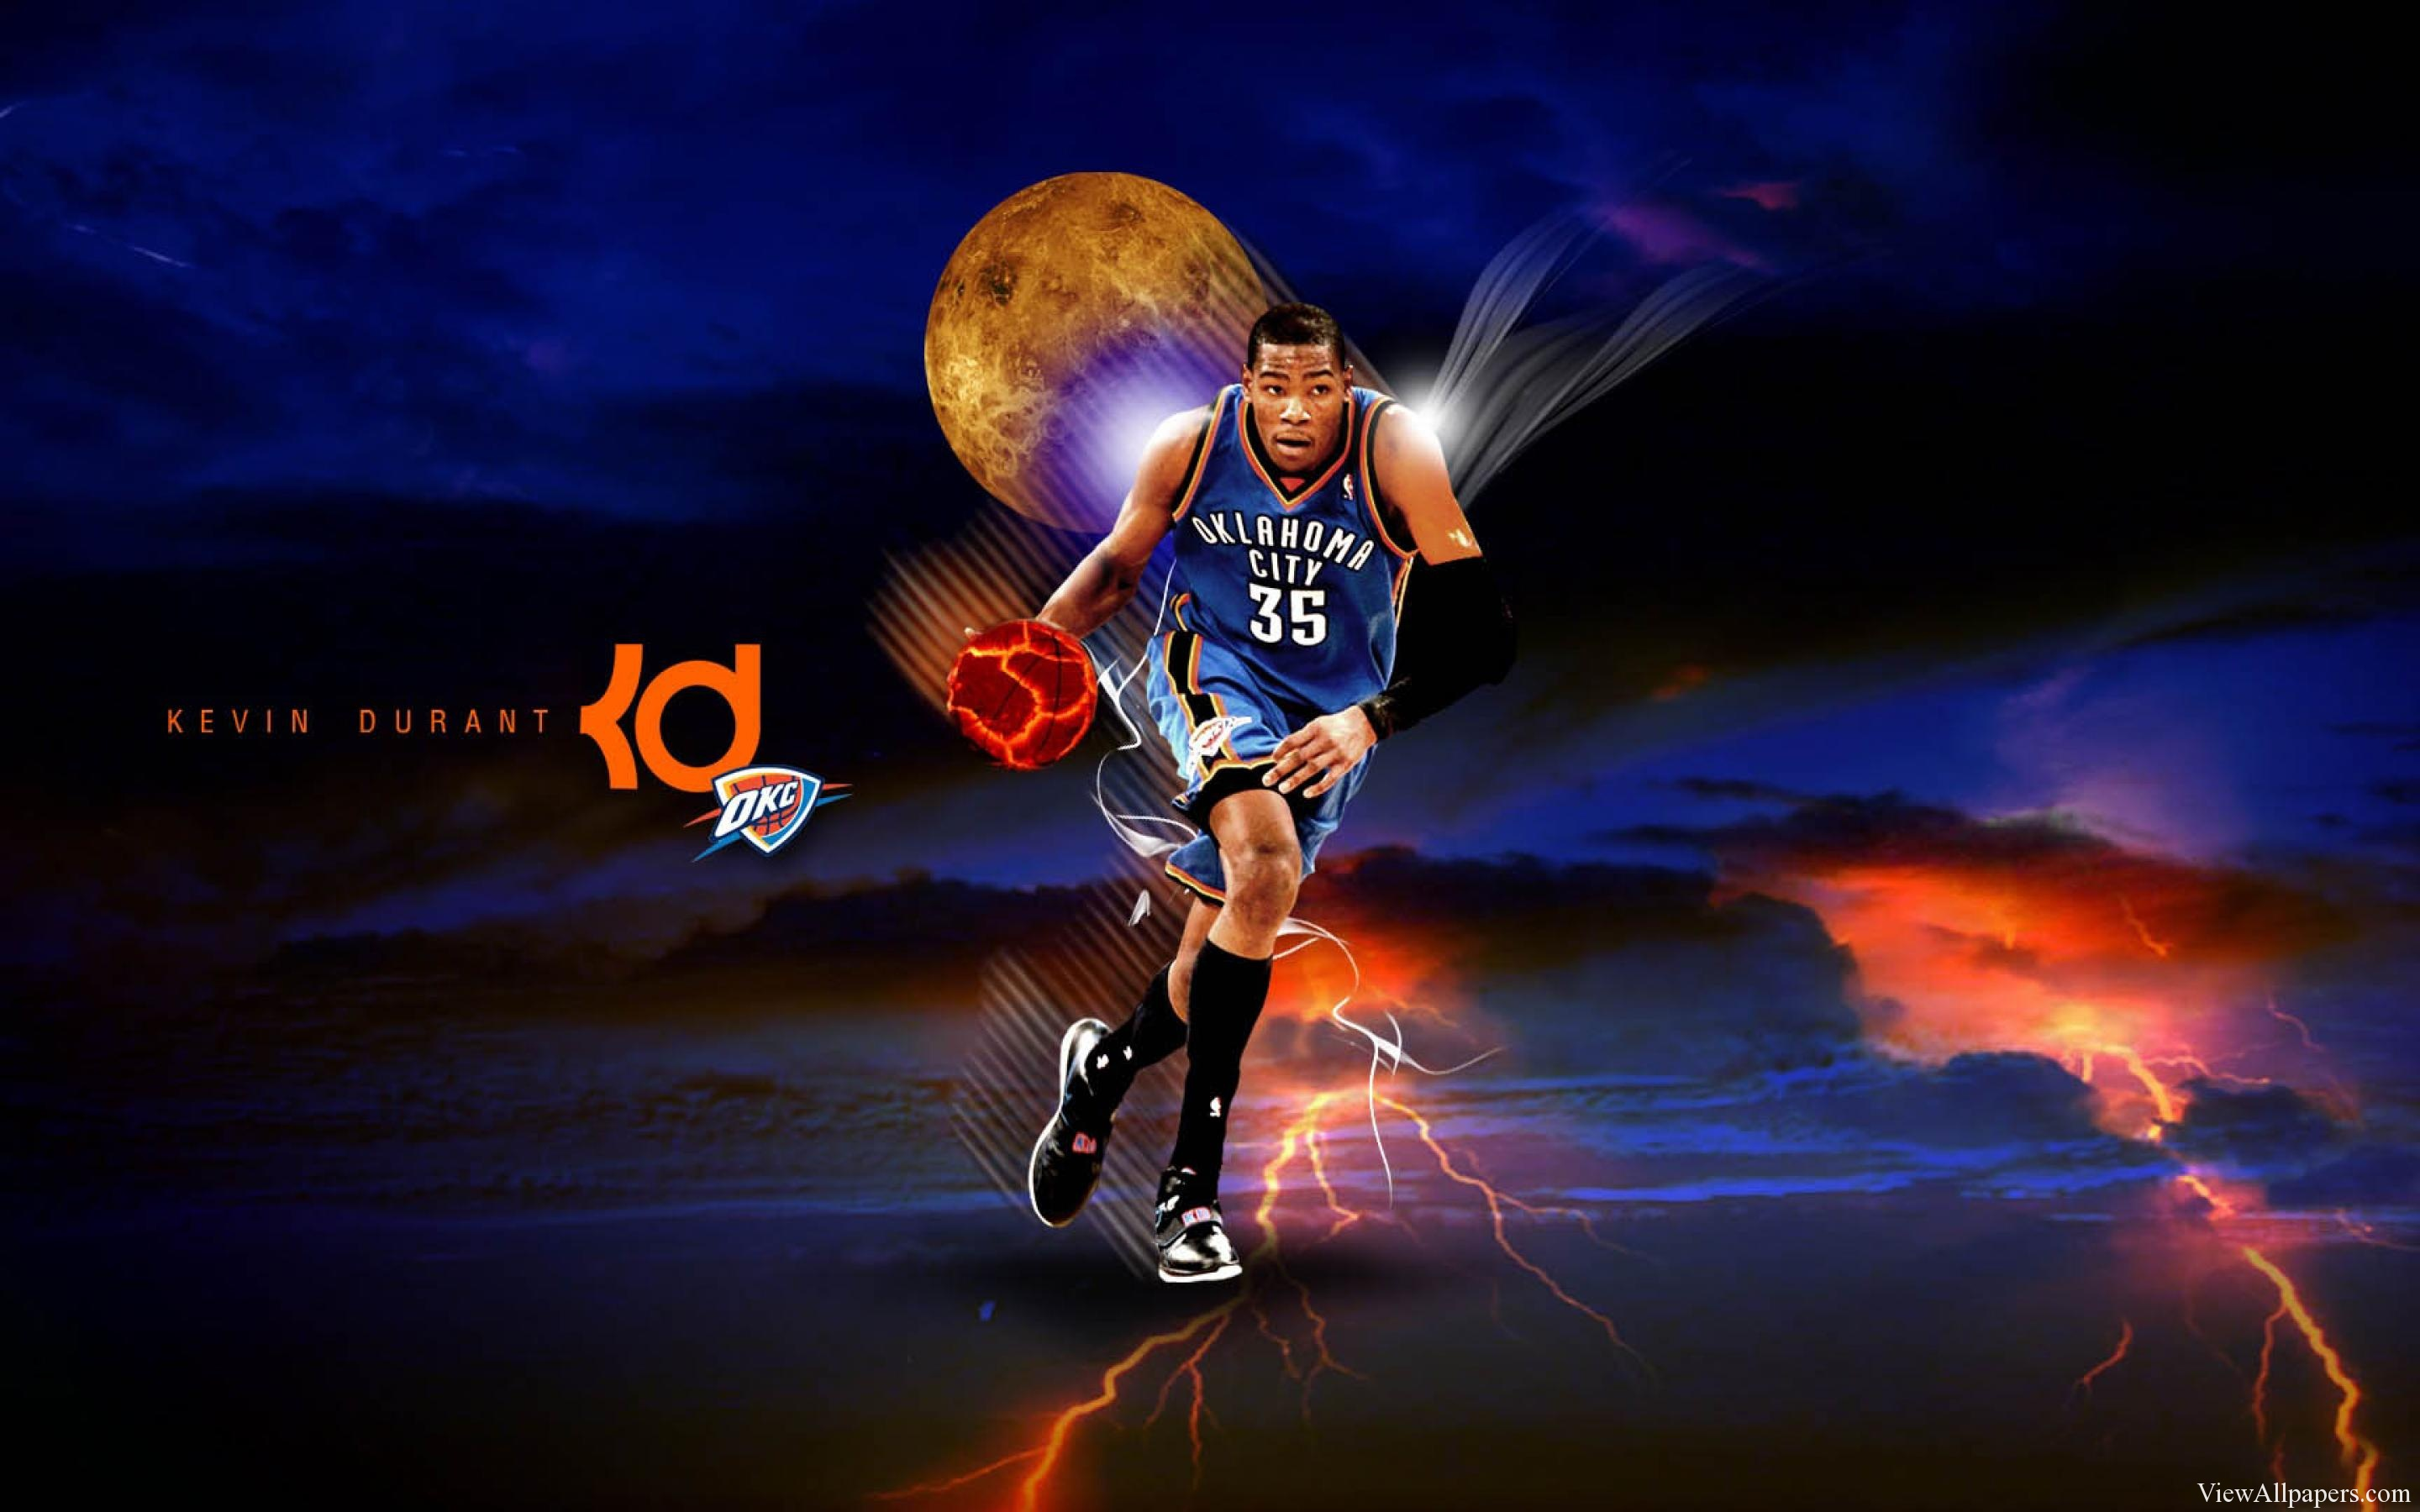 Kevin Durant HD Wallpapers High Resolution download Kevin Durant 2880x1800